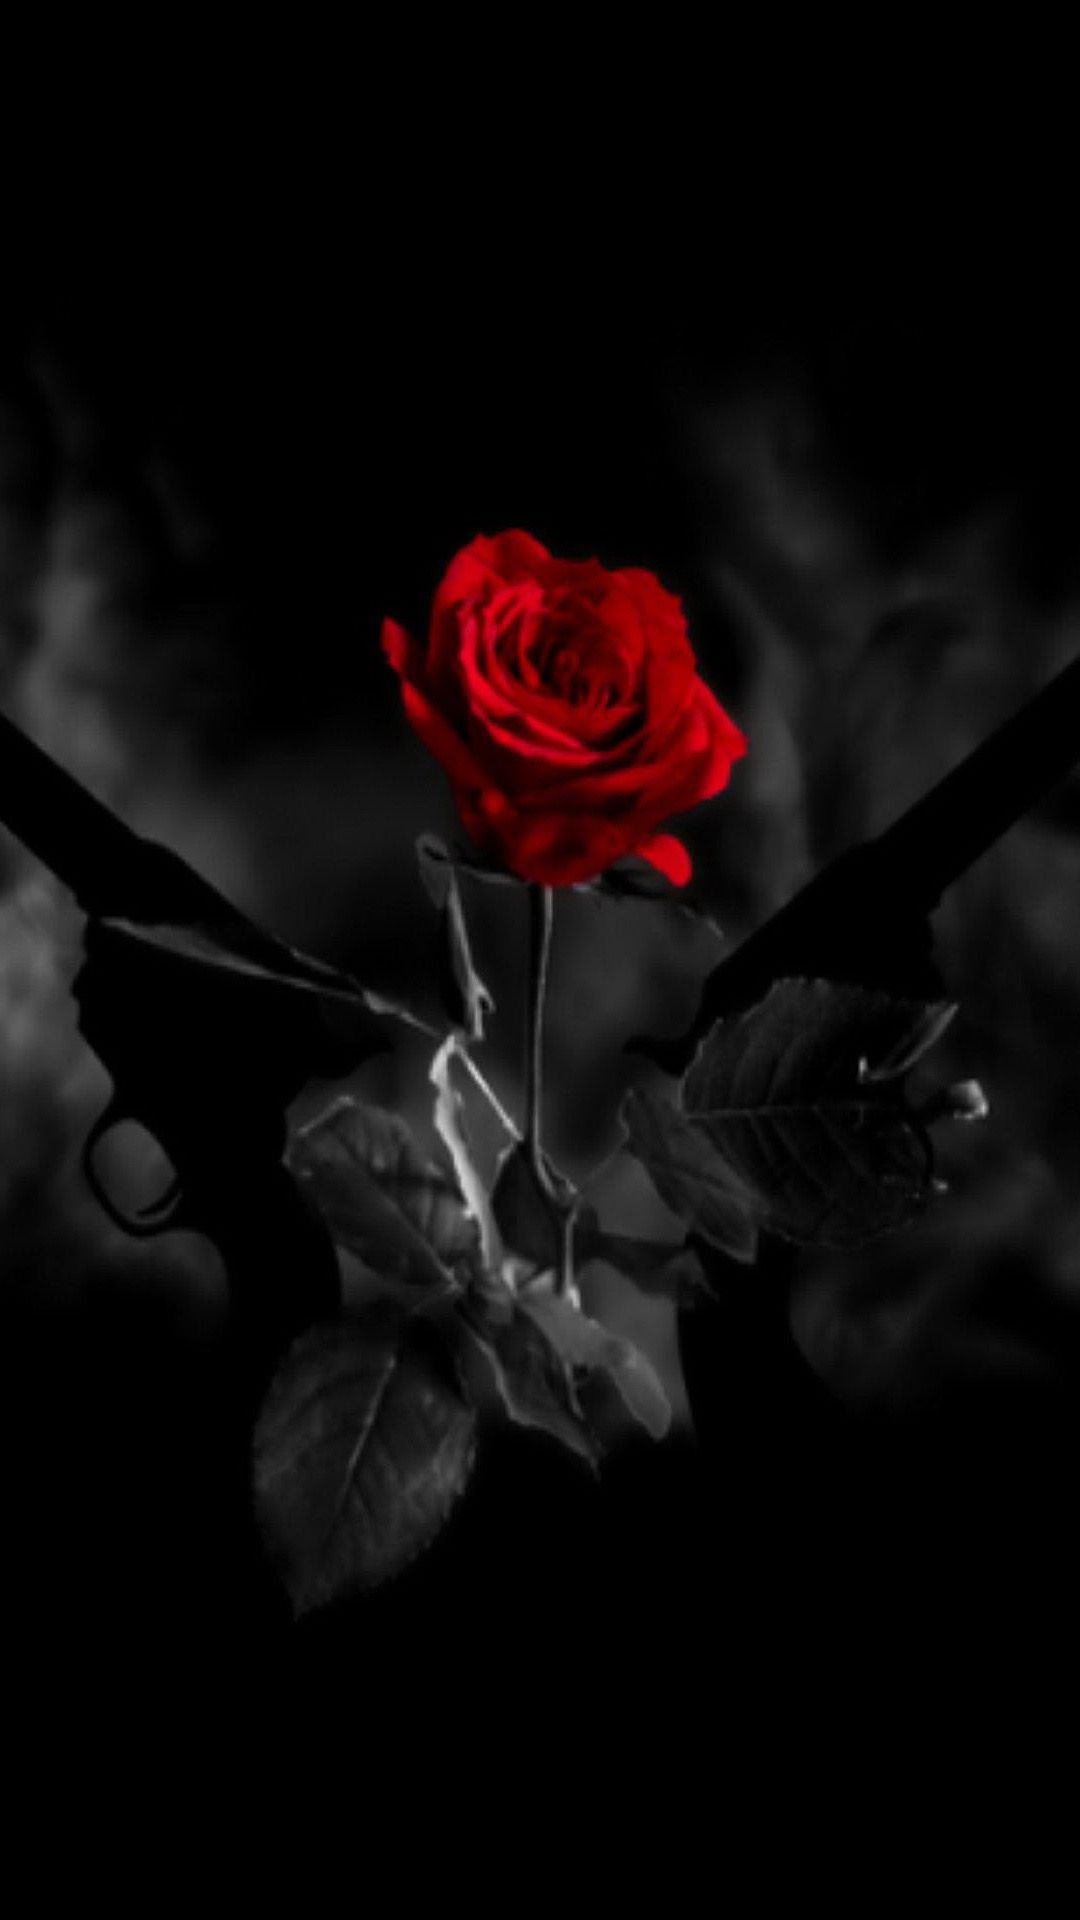 Red Rose With Black Shade Phone Wallpaper Images Aesthetic Roses Dark Red Roses